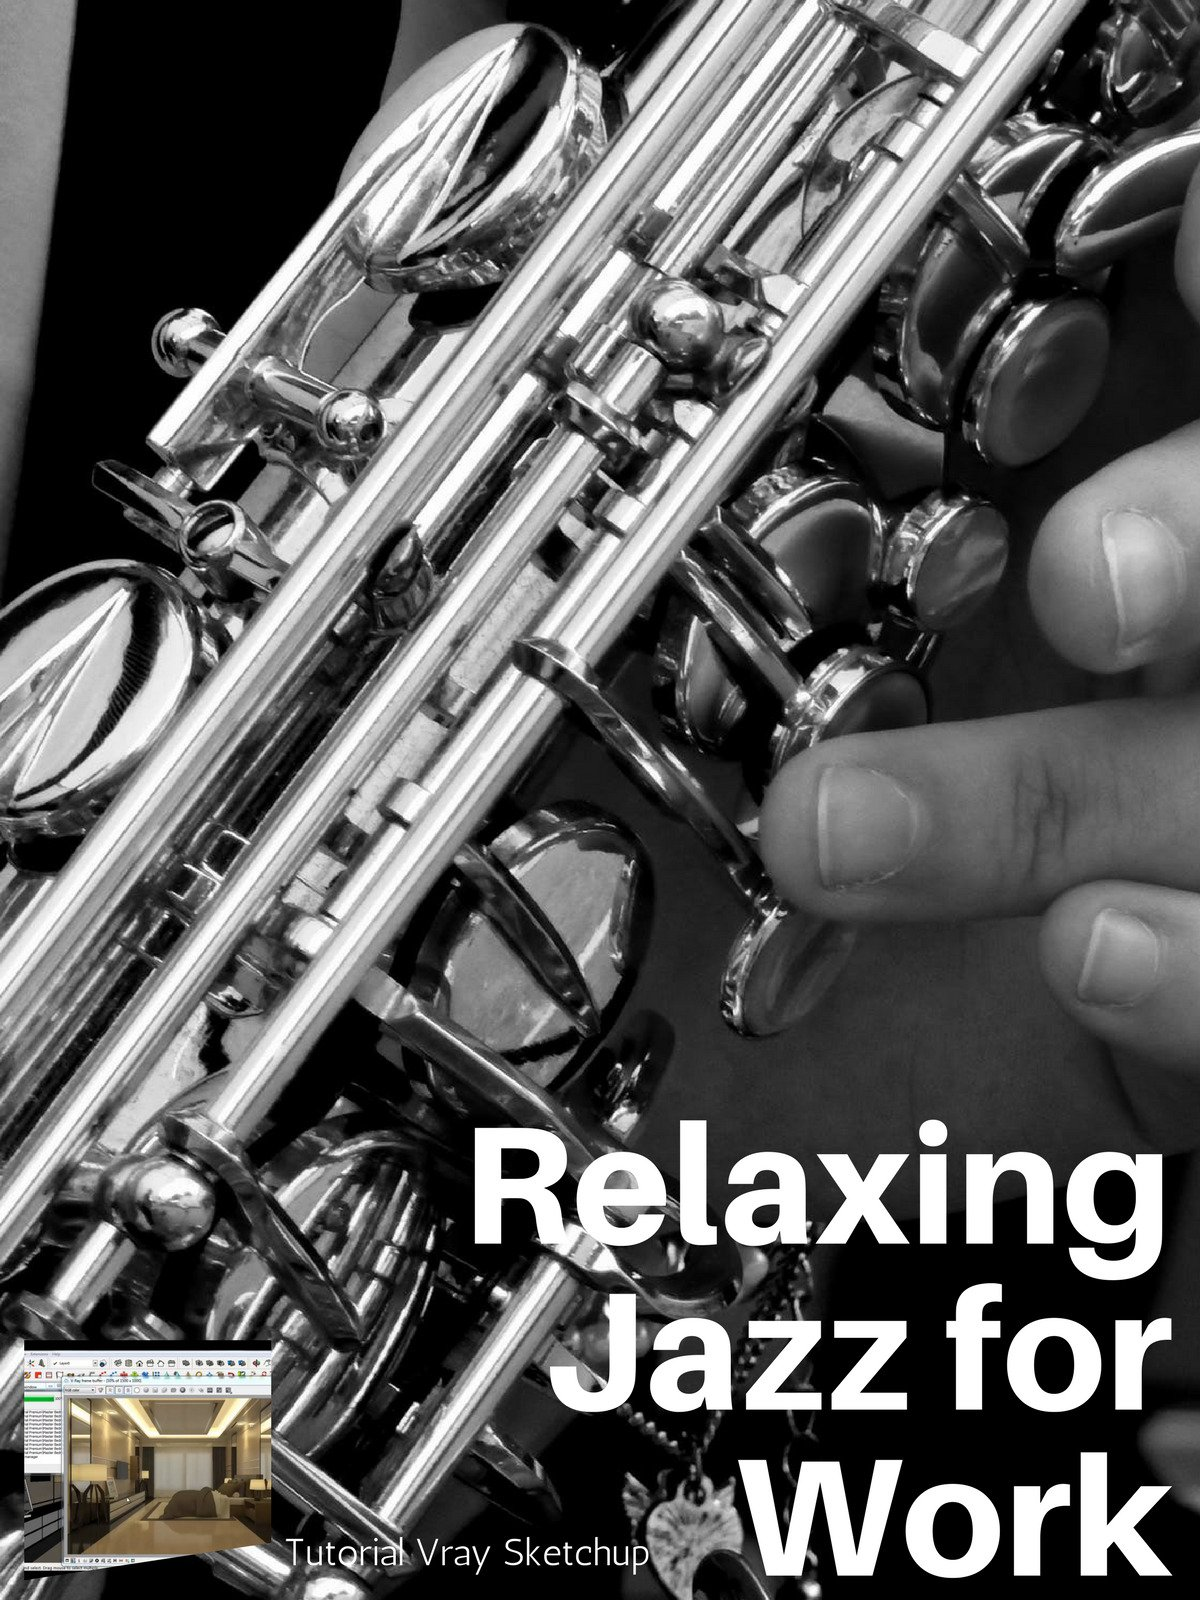 Tutorial Vray Sketchup ( Relaxing Jazz for Work ) on Amazon Prime Video UK